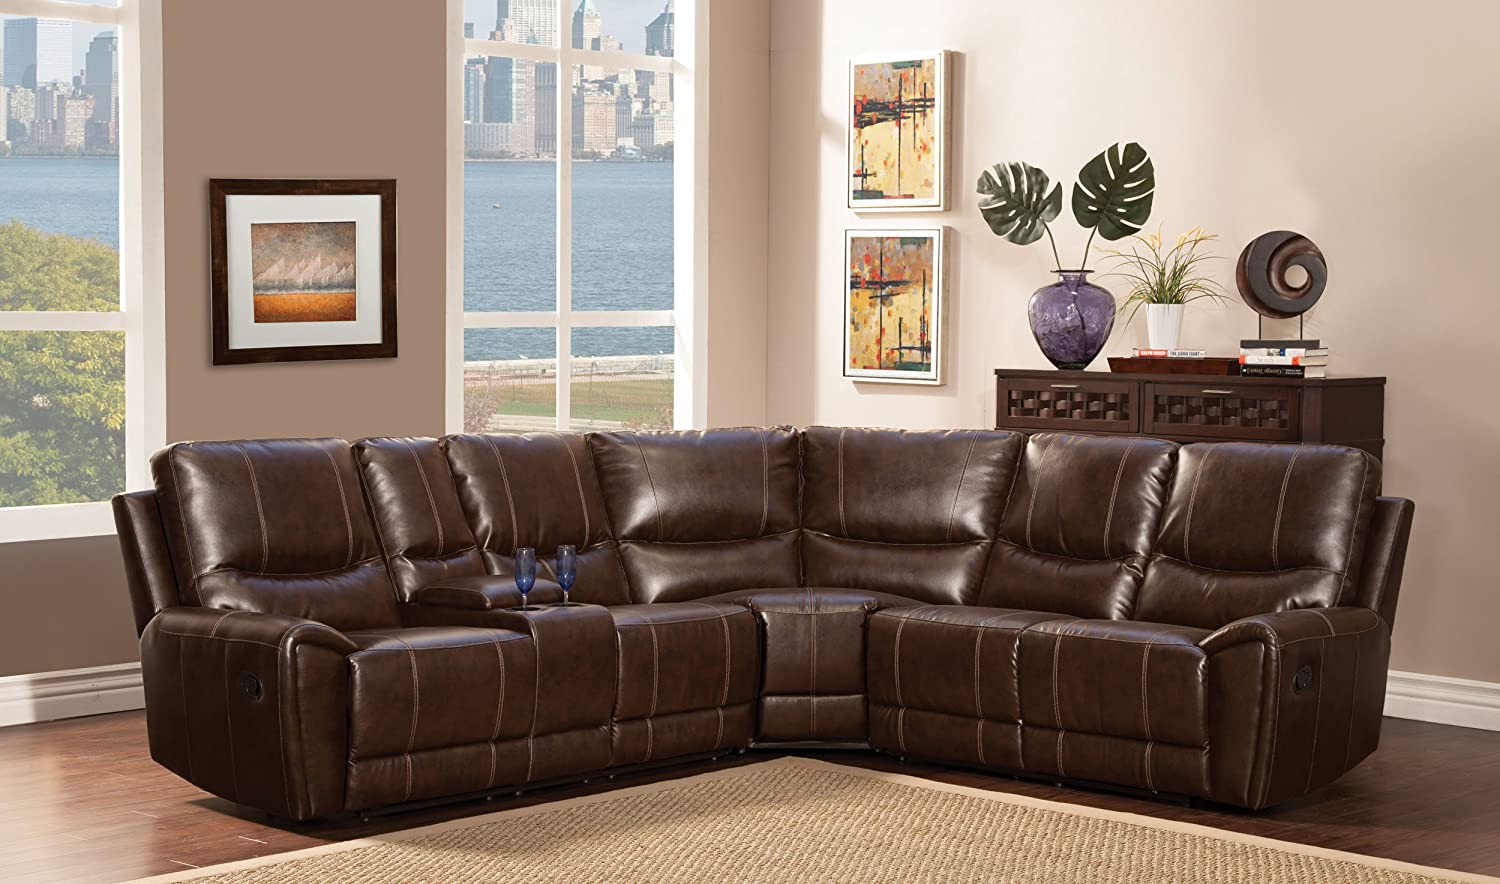 Amazon.com Homelegance 3 Piece Bonded Leather Sectional Reclining Sofa with Cup Holder Console Brown Kitchen u0026 Dining & Amazon.com: Homelegance 3 Piece Bonded Leather Sectional Reclining ... islam-shia.org